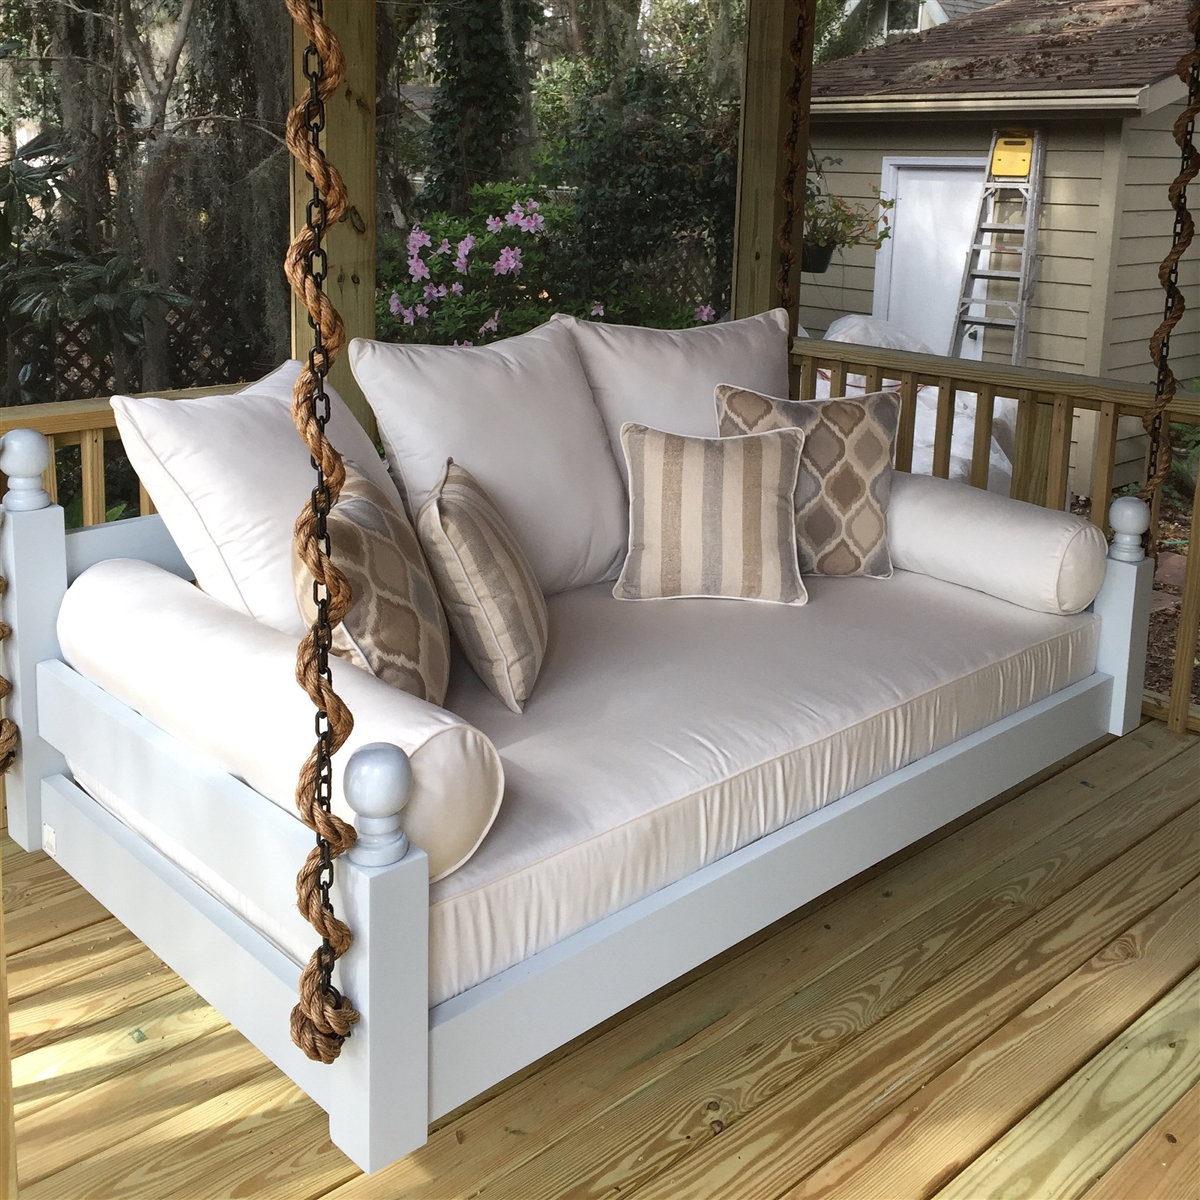 Outdoor Porch Bed Concepts | Royals Courage Within Lamp Outdoor Porch Swings (View 18 of 25)